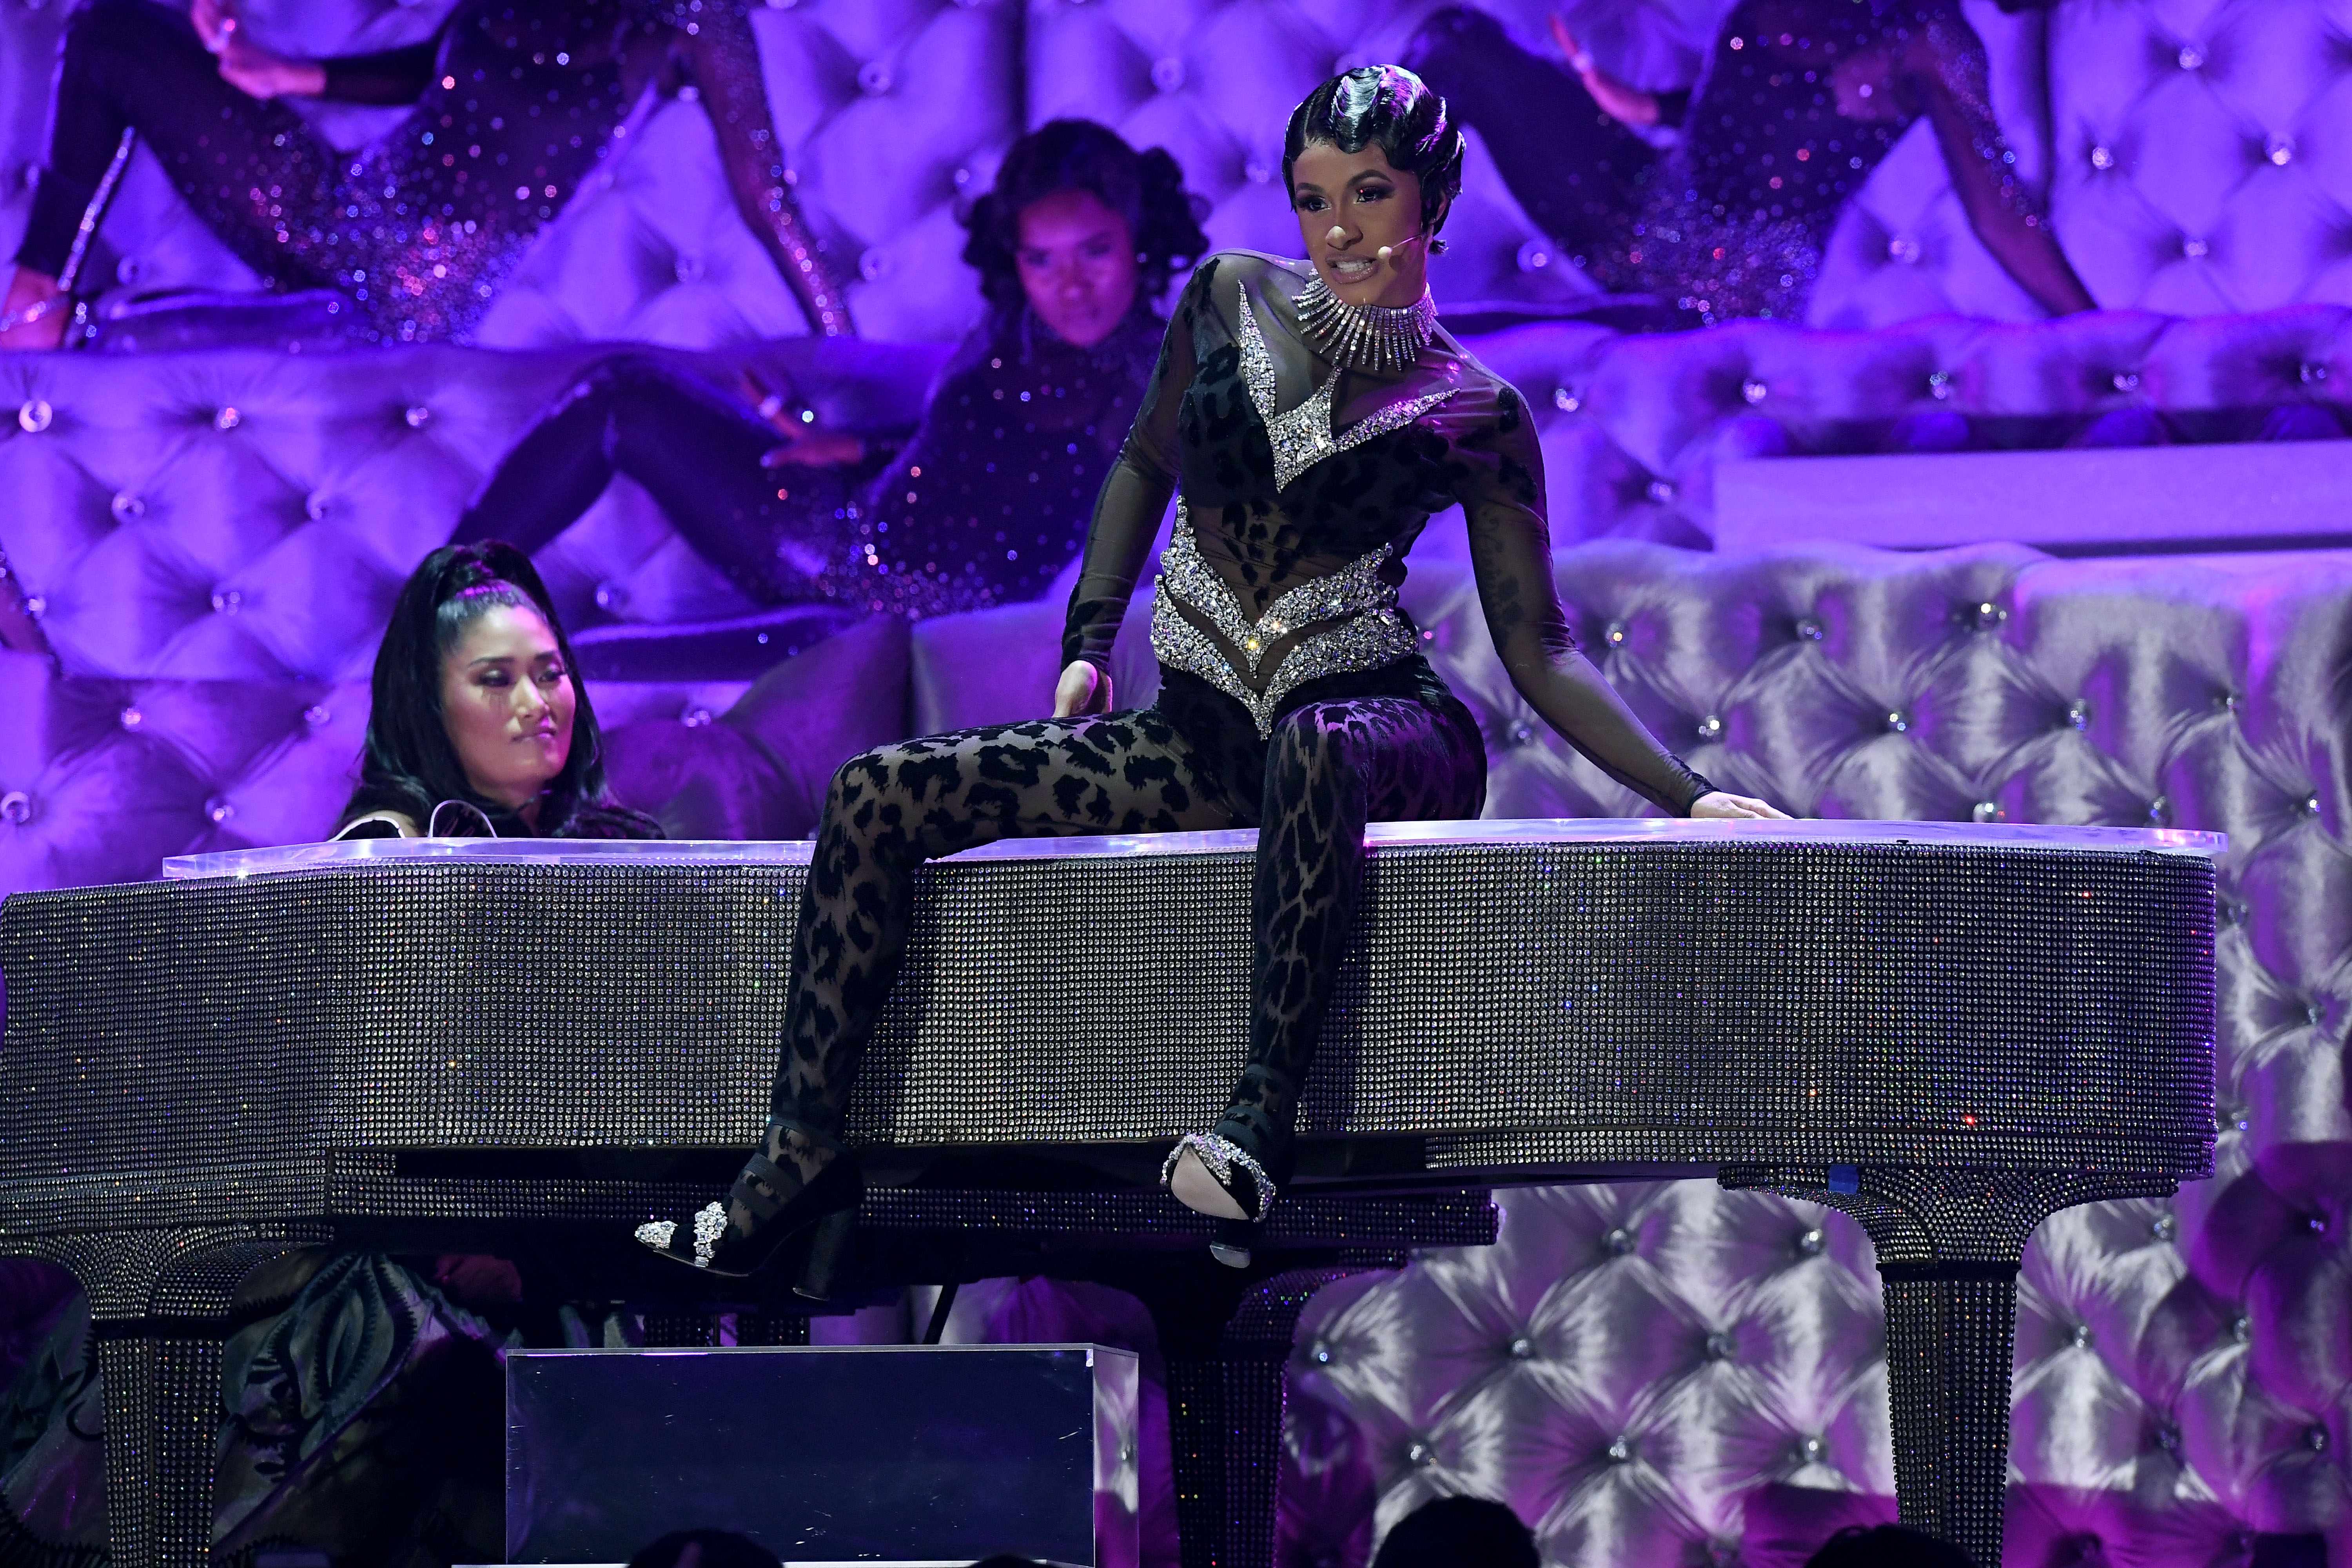 Cardi B's Grammys pianist Chloe Flower has Internet going crazy: 'You just stole the show'